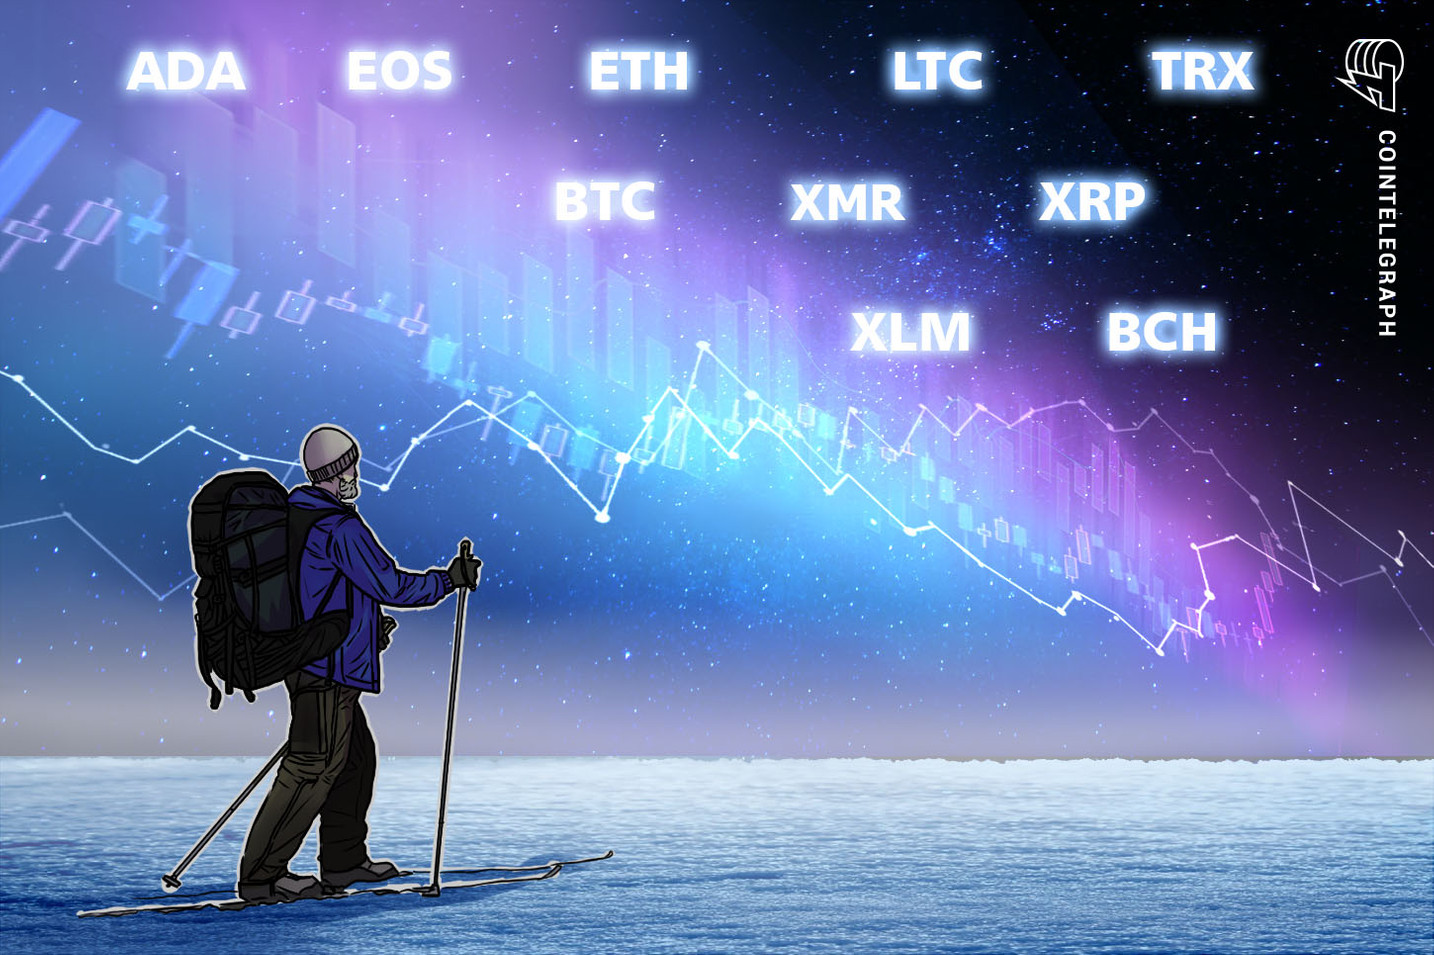 Bitcoin, Ethereum, Ripple, Bitcoin Cash, EOS, Stellar, Litecoin, Cardano, Monero, TRON: Price Analysis, October 29